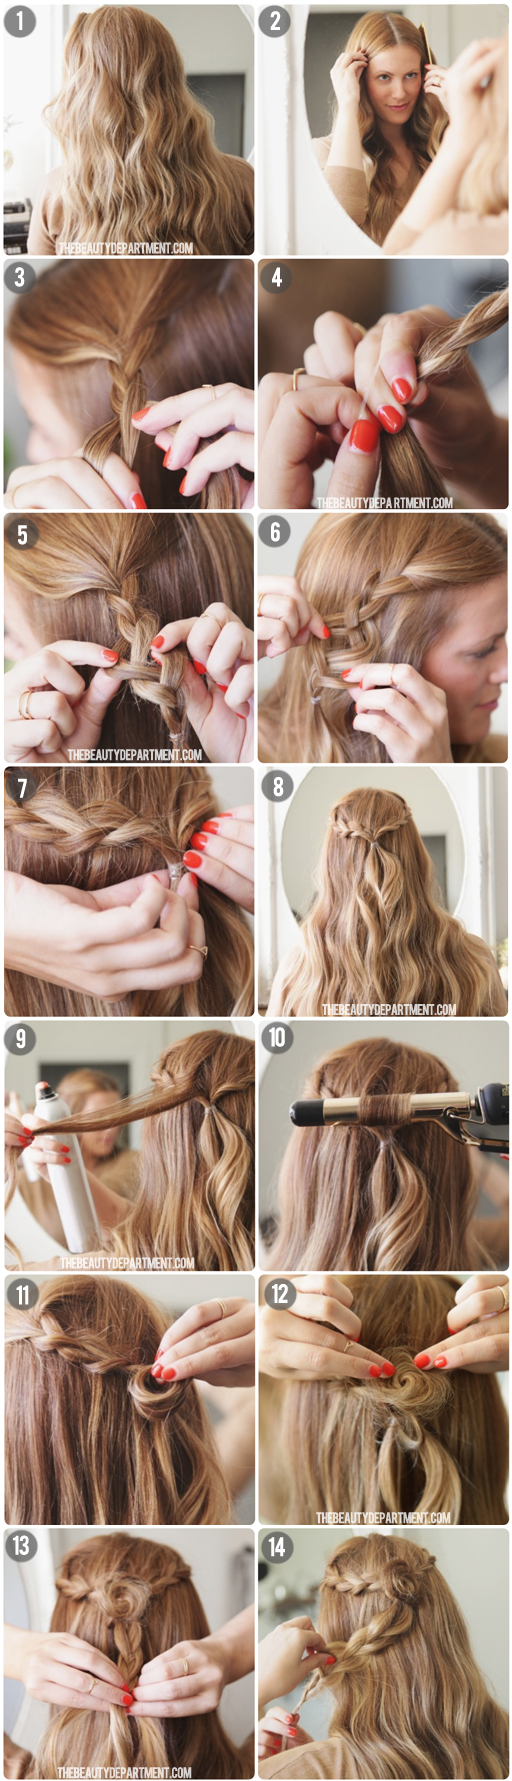 Superb The Beauty Department Your Daily Dose Of Pretty Rodarte Hairstyles For Women Draintrainus